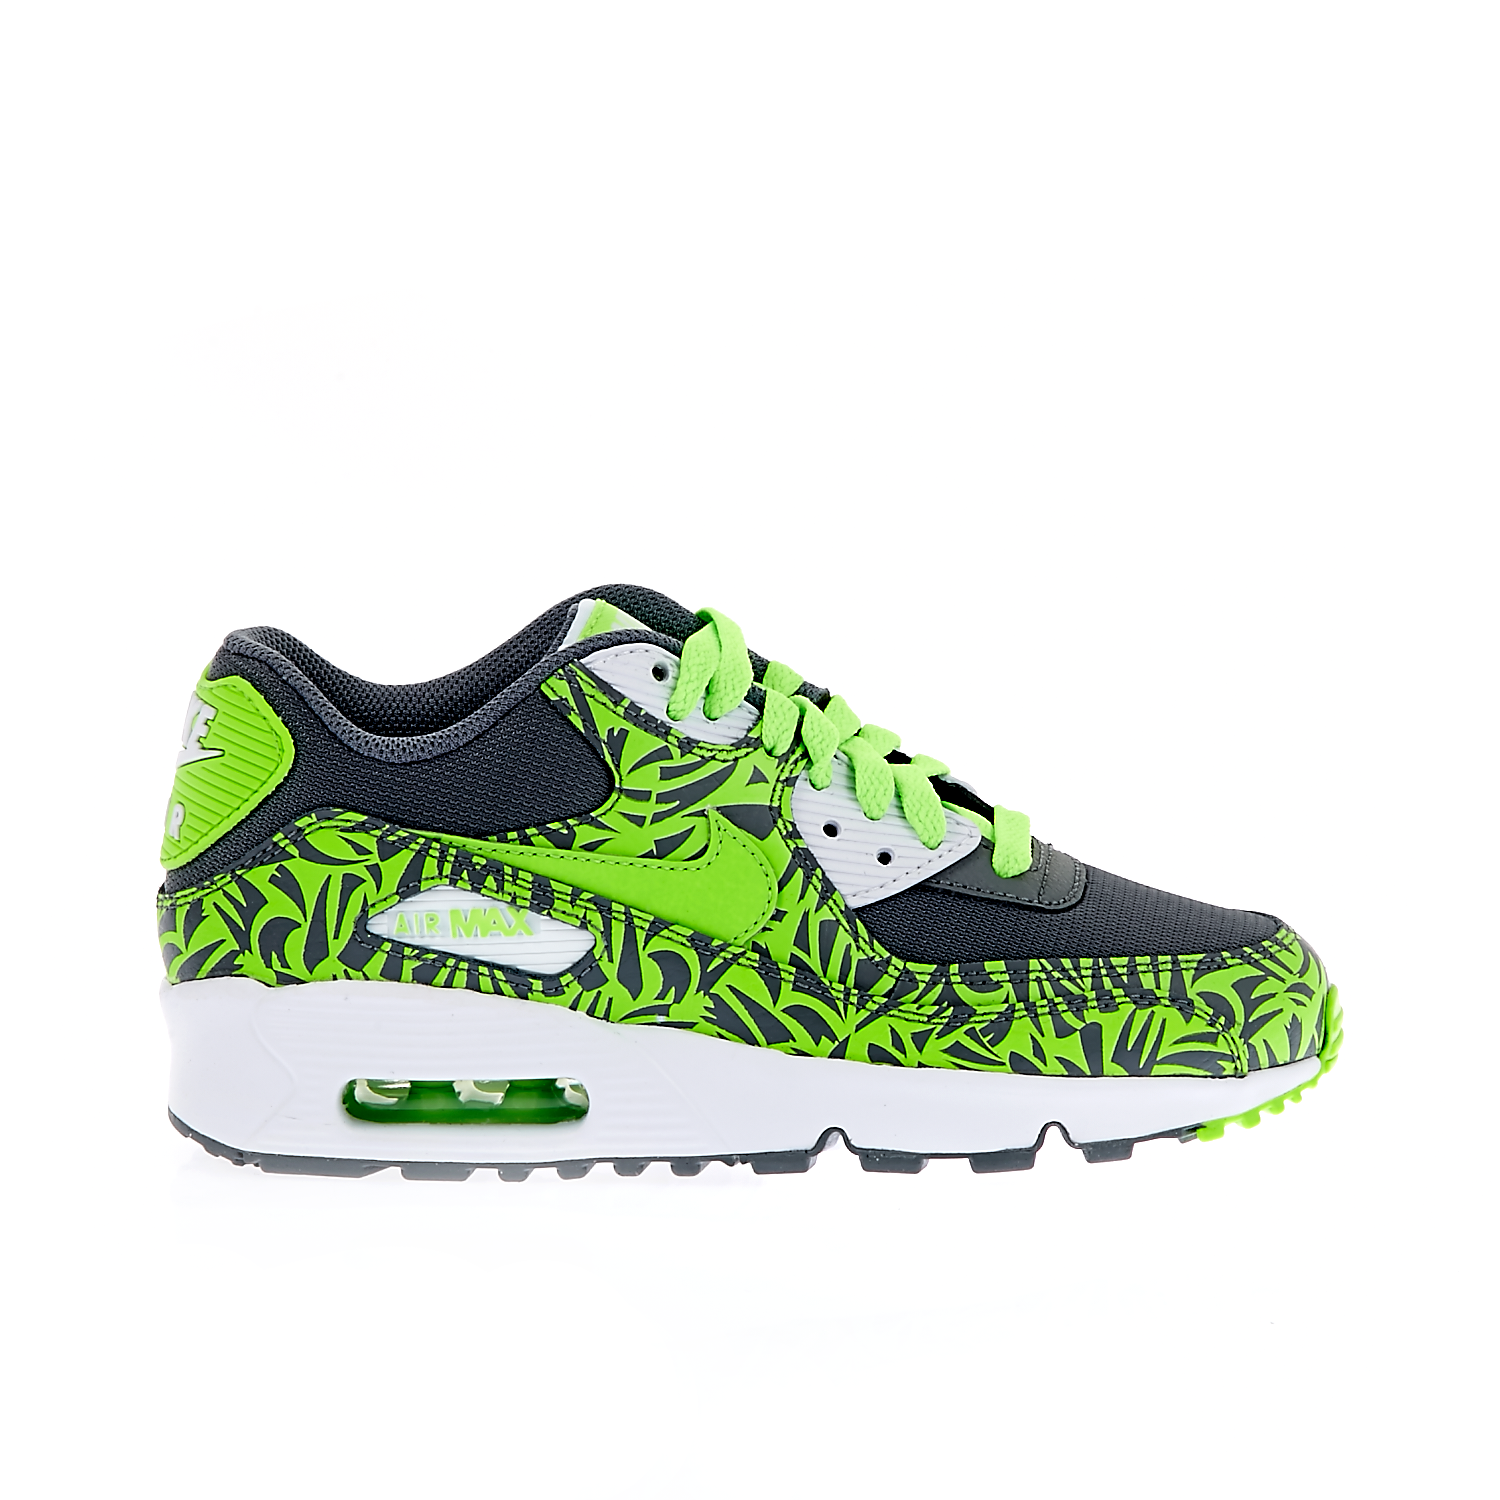 3c8521d3c8ae NIKE - Παιδικά παπούτσια NIKE AIR MAX 90 LTR (GS) άσπρα-μπλε - Αθλητικά